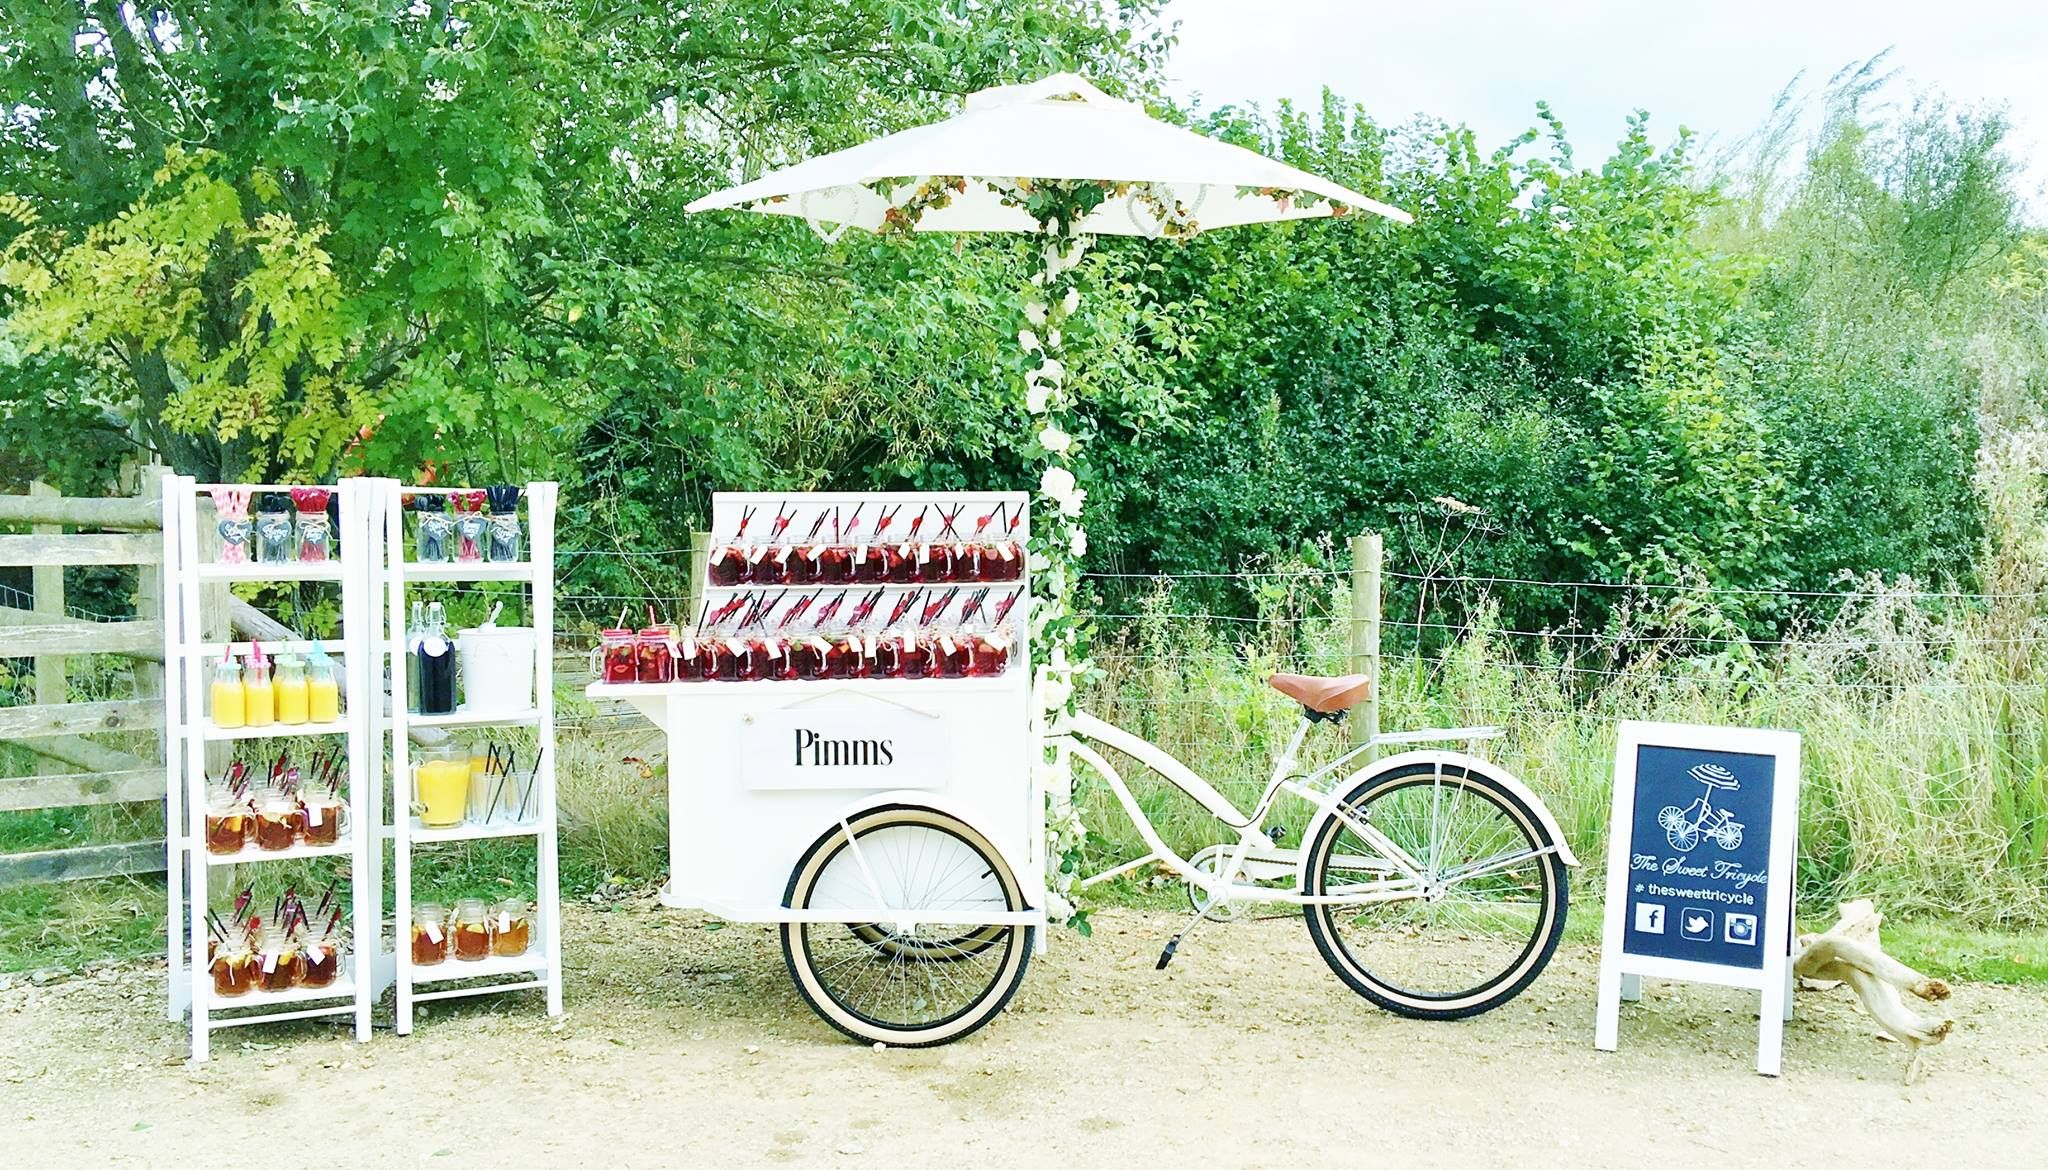 The Sweet Tricycle Pimms Set Up